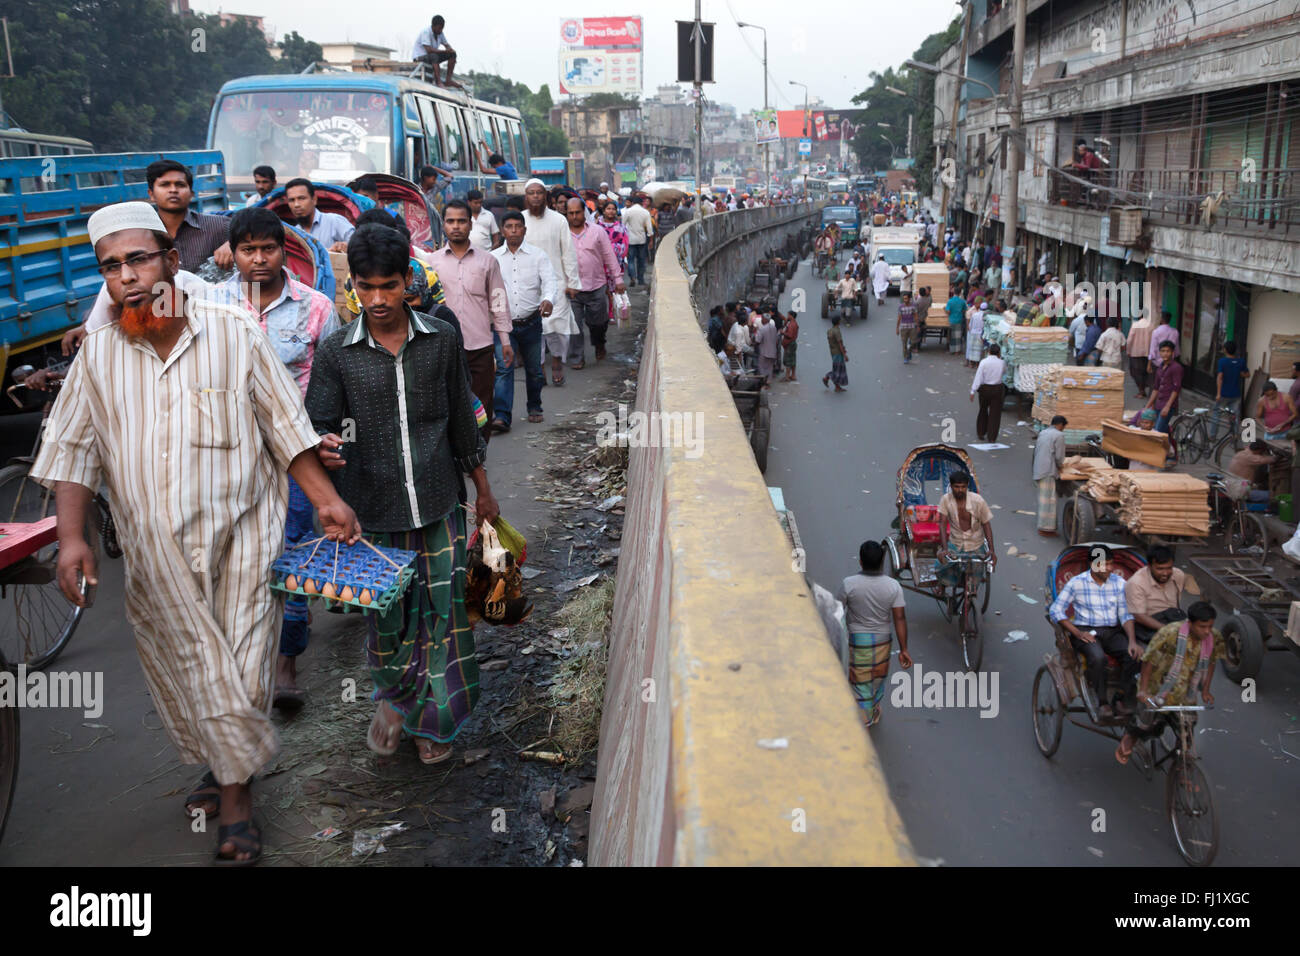 People walk in a crowded and busy street of Dhaka , Bangladesh  - landscape - Stock Image